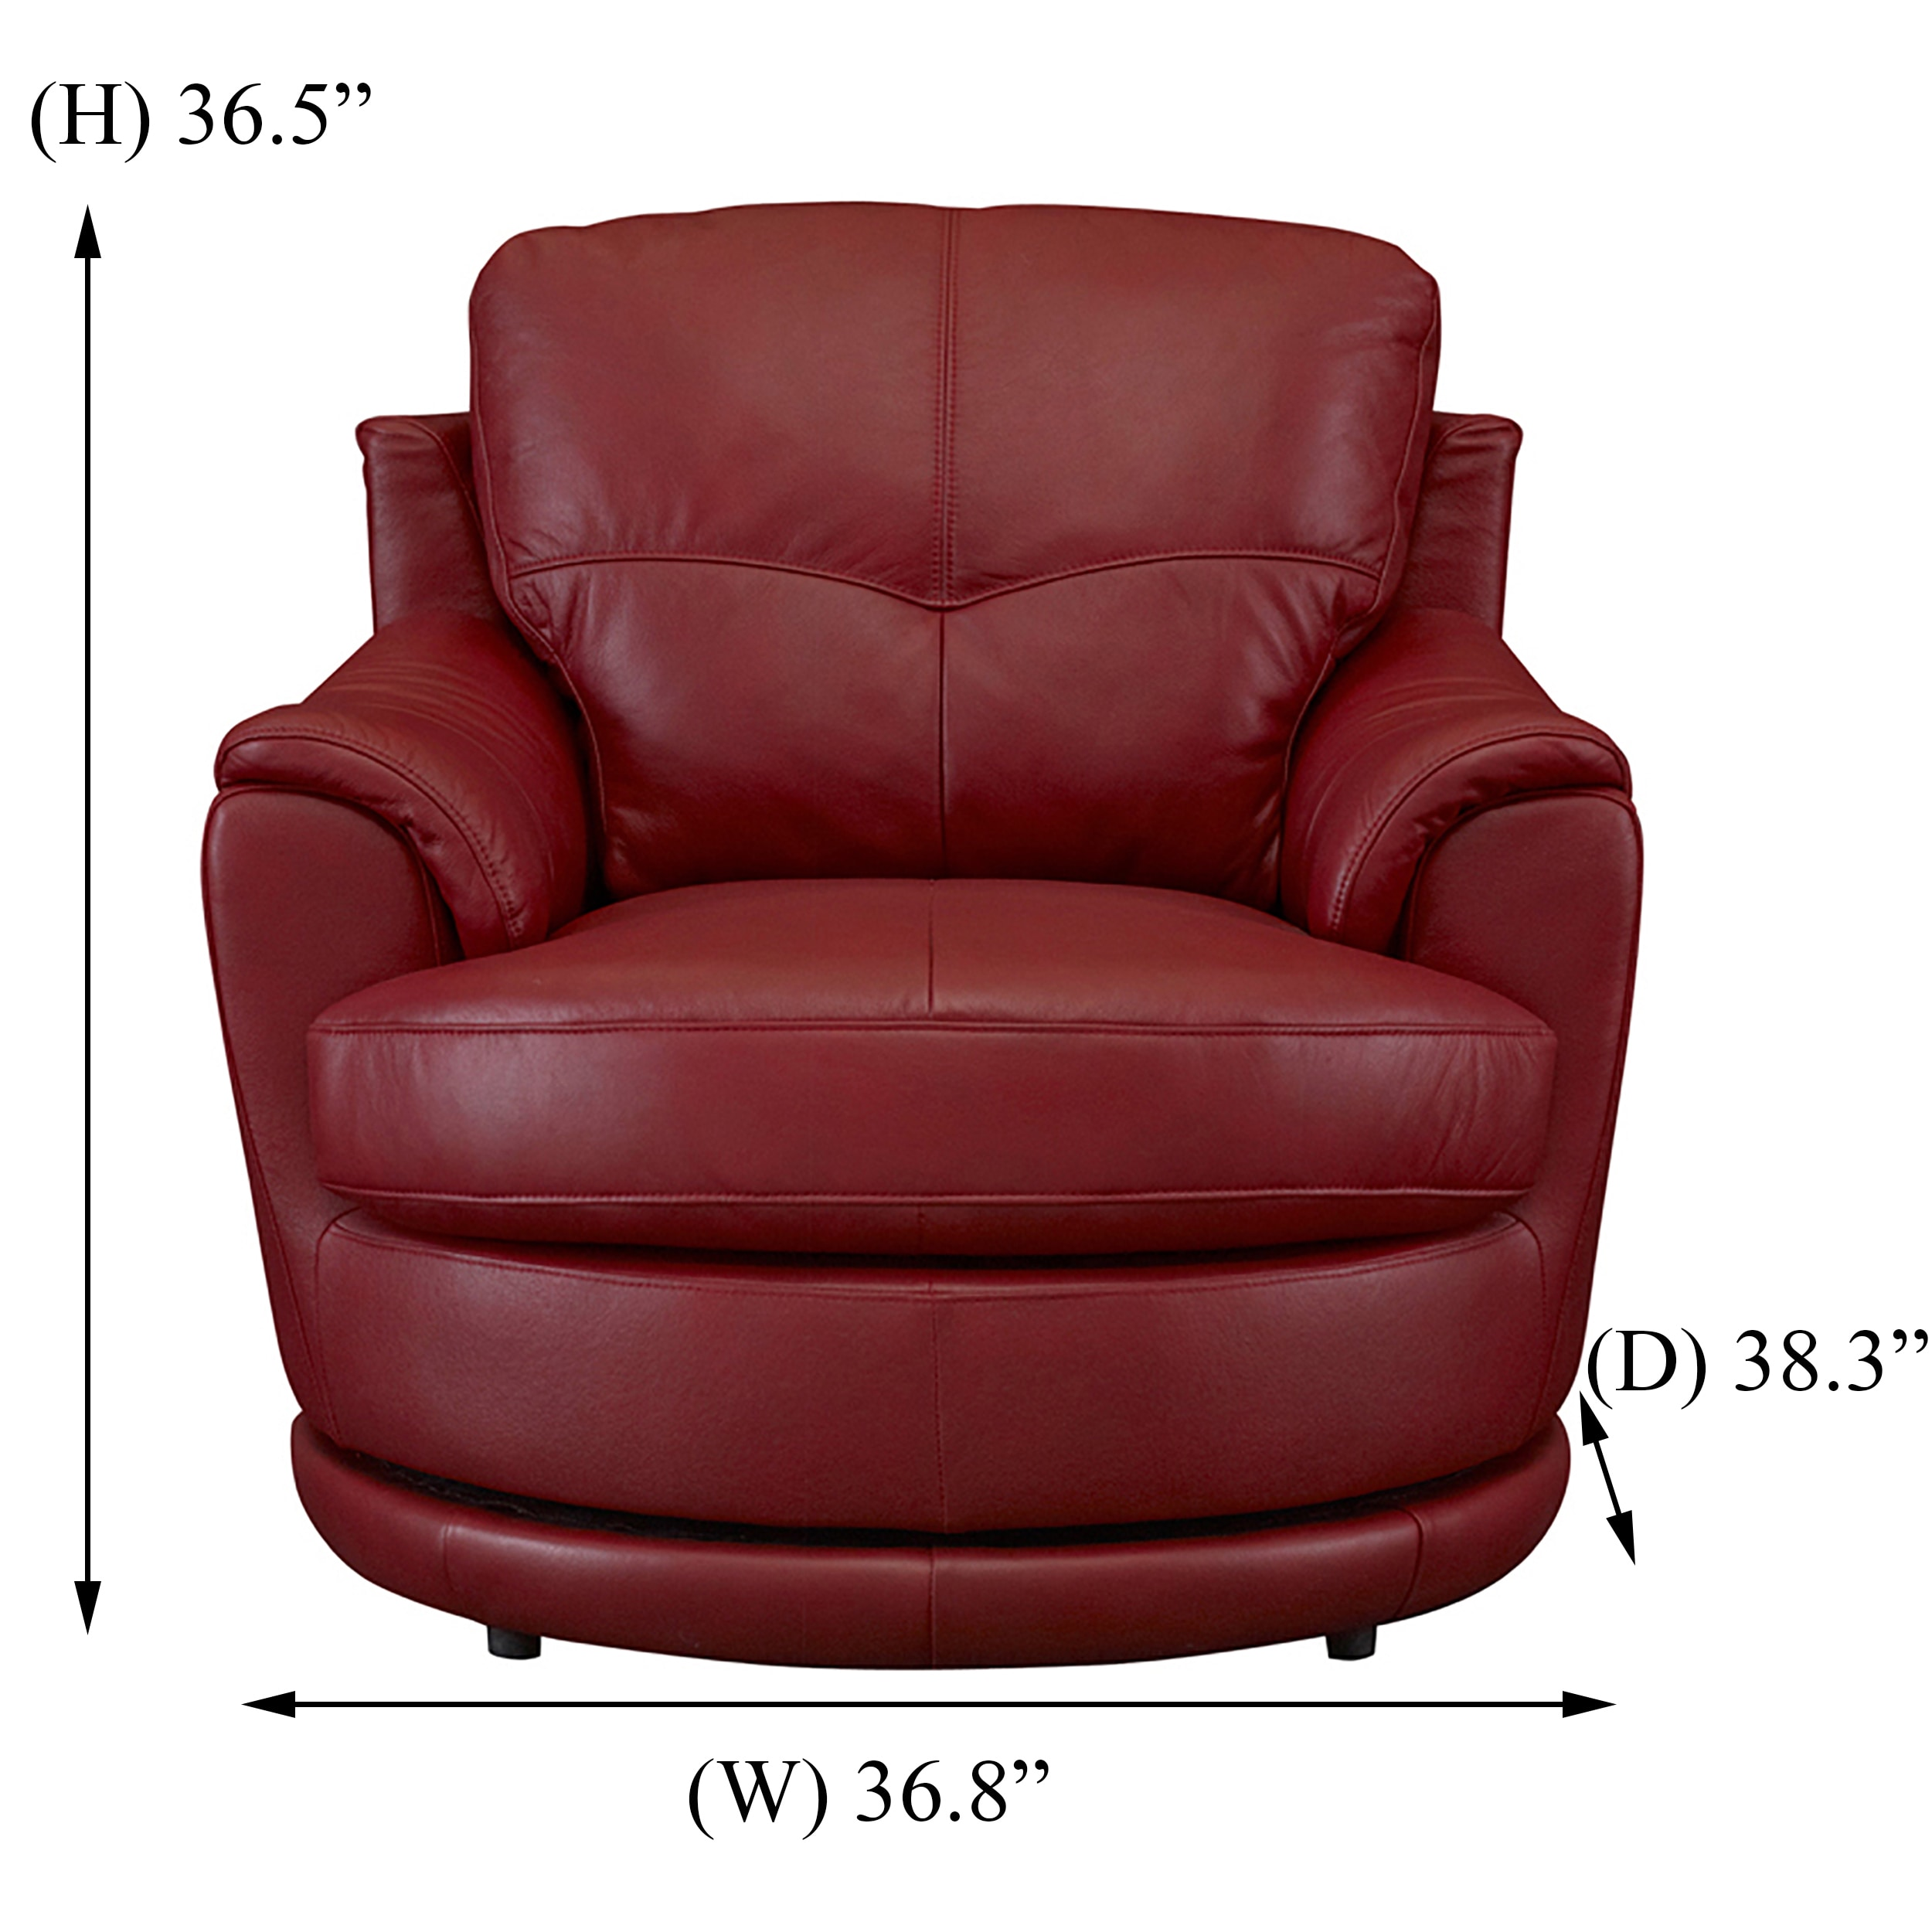 Craigslist Office Chair Red Leather Swivel Chair Bath Tub Chair Big Chairs With